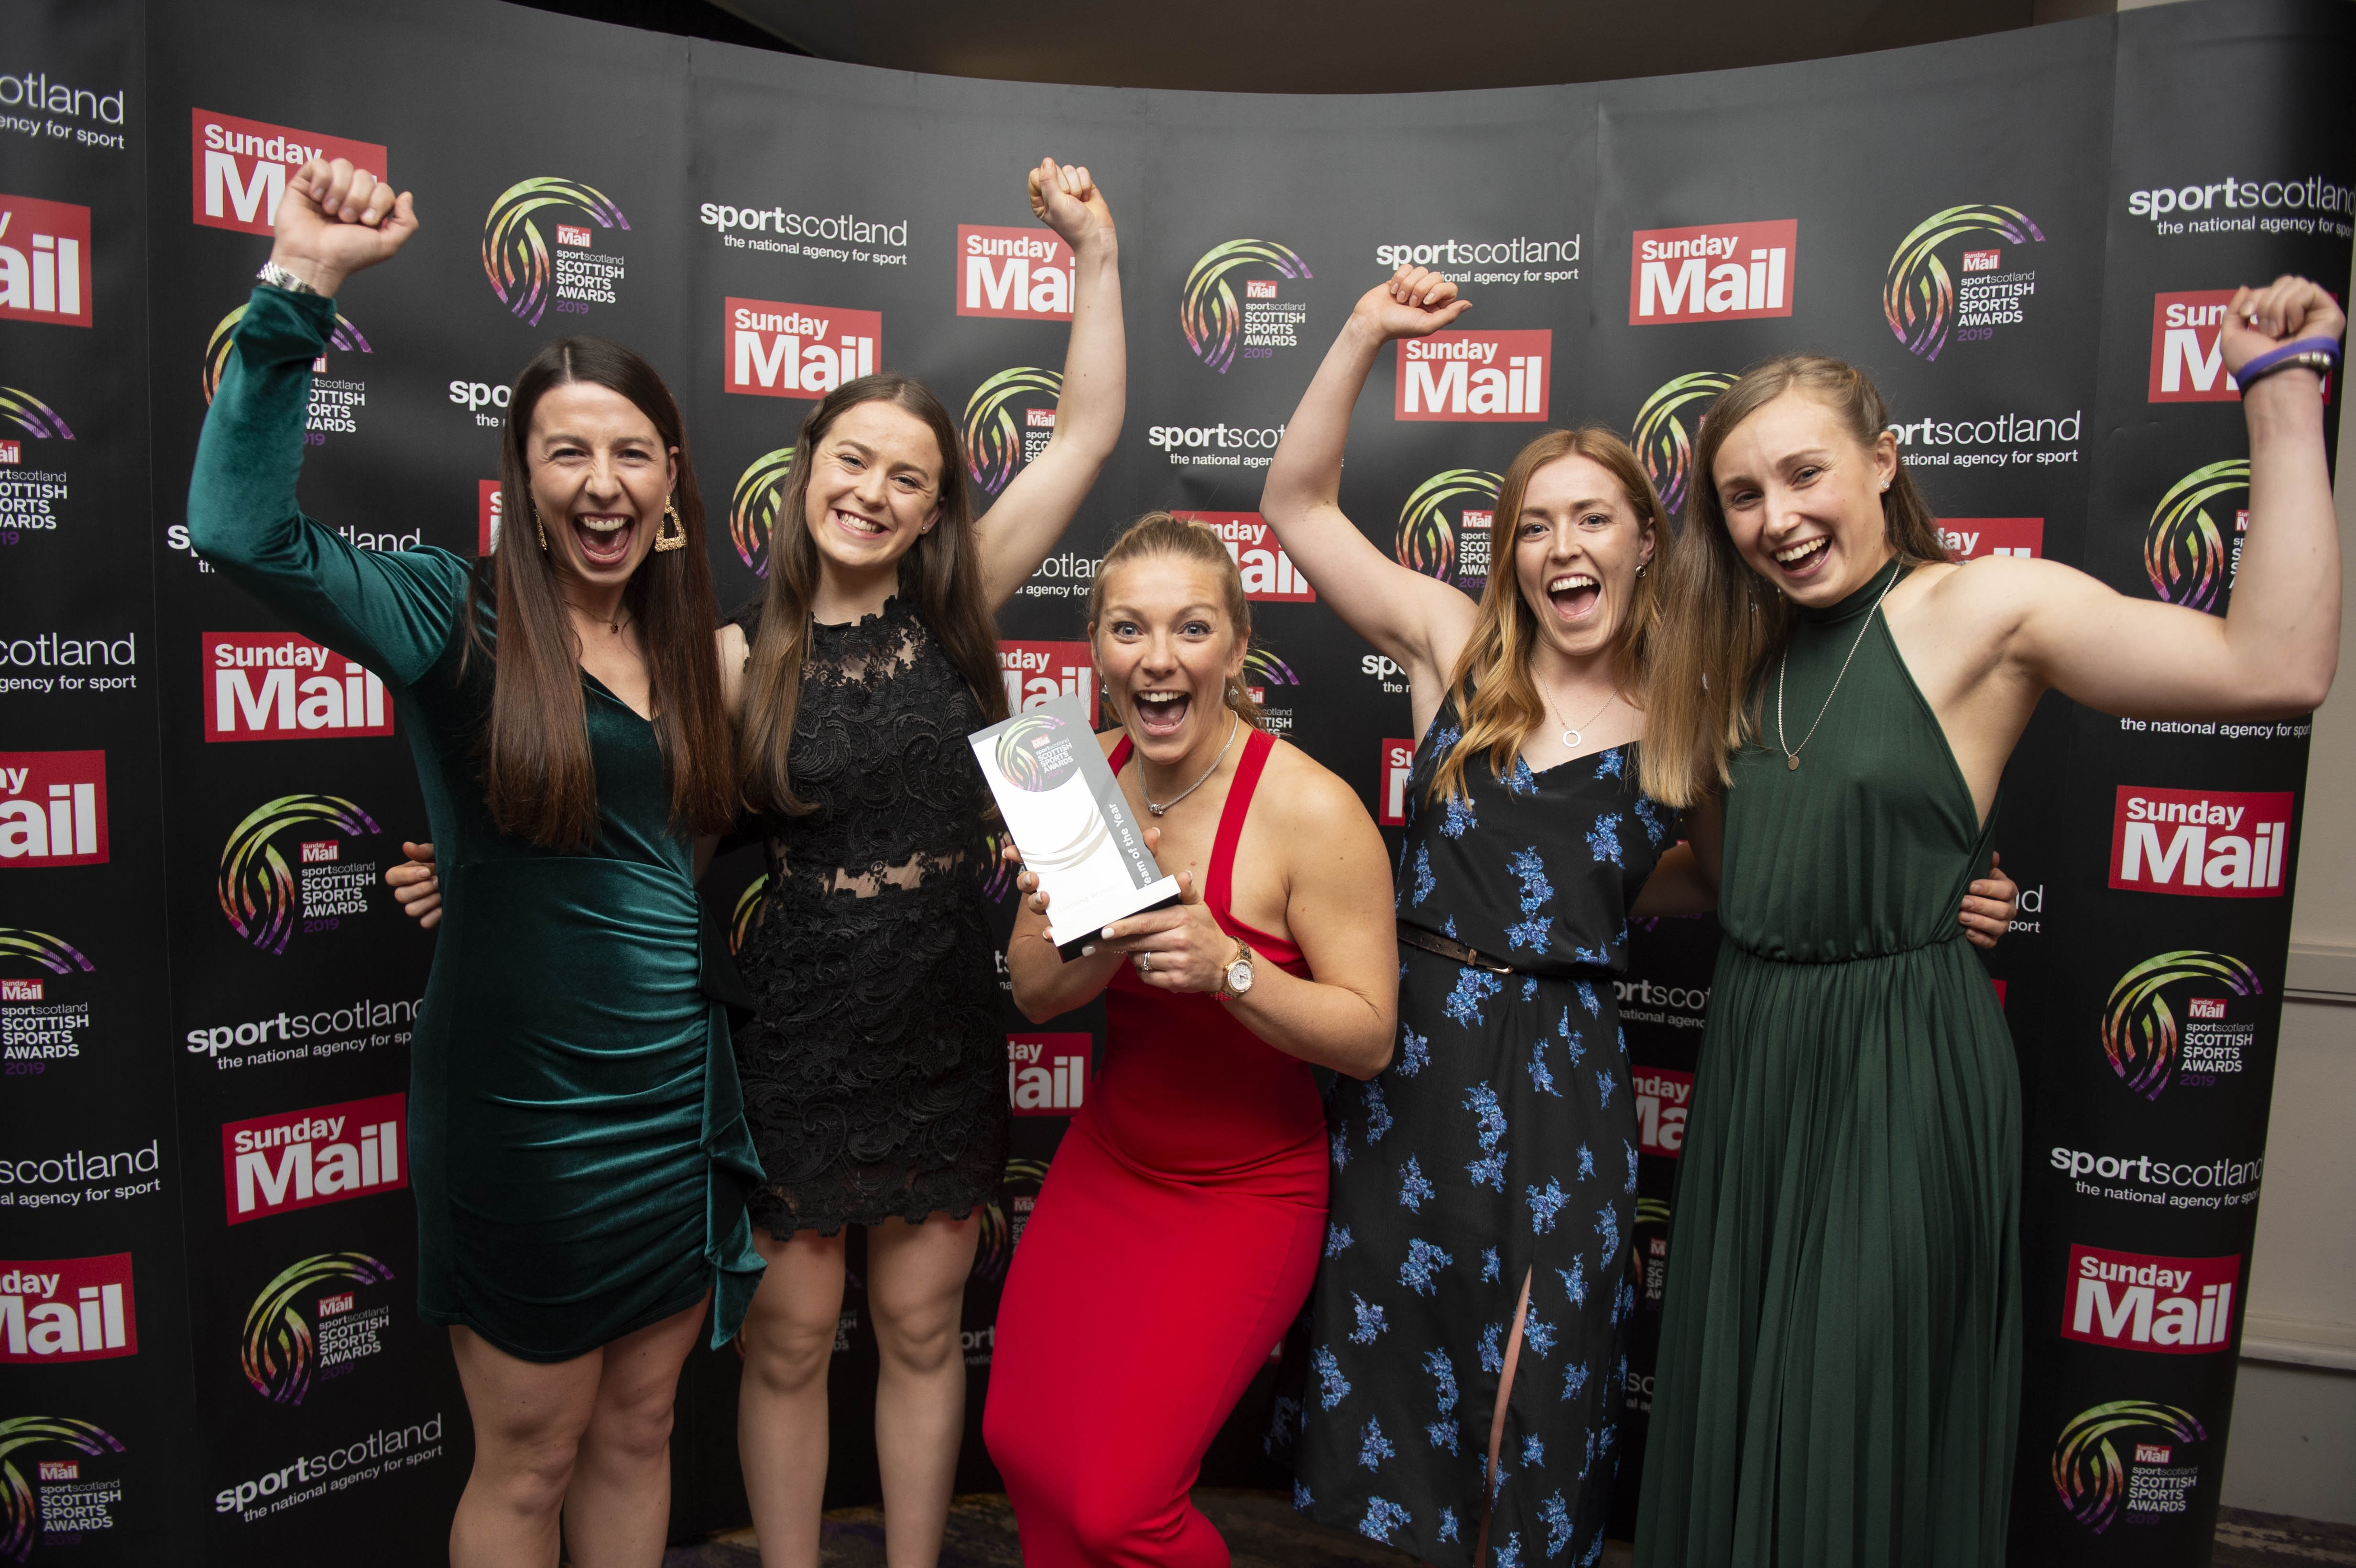 Scotland women's hockey team won Team of the Year at the 2019 Scottish Sports Awards